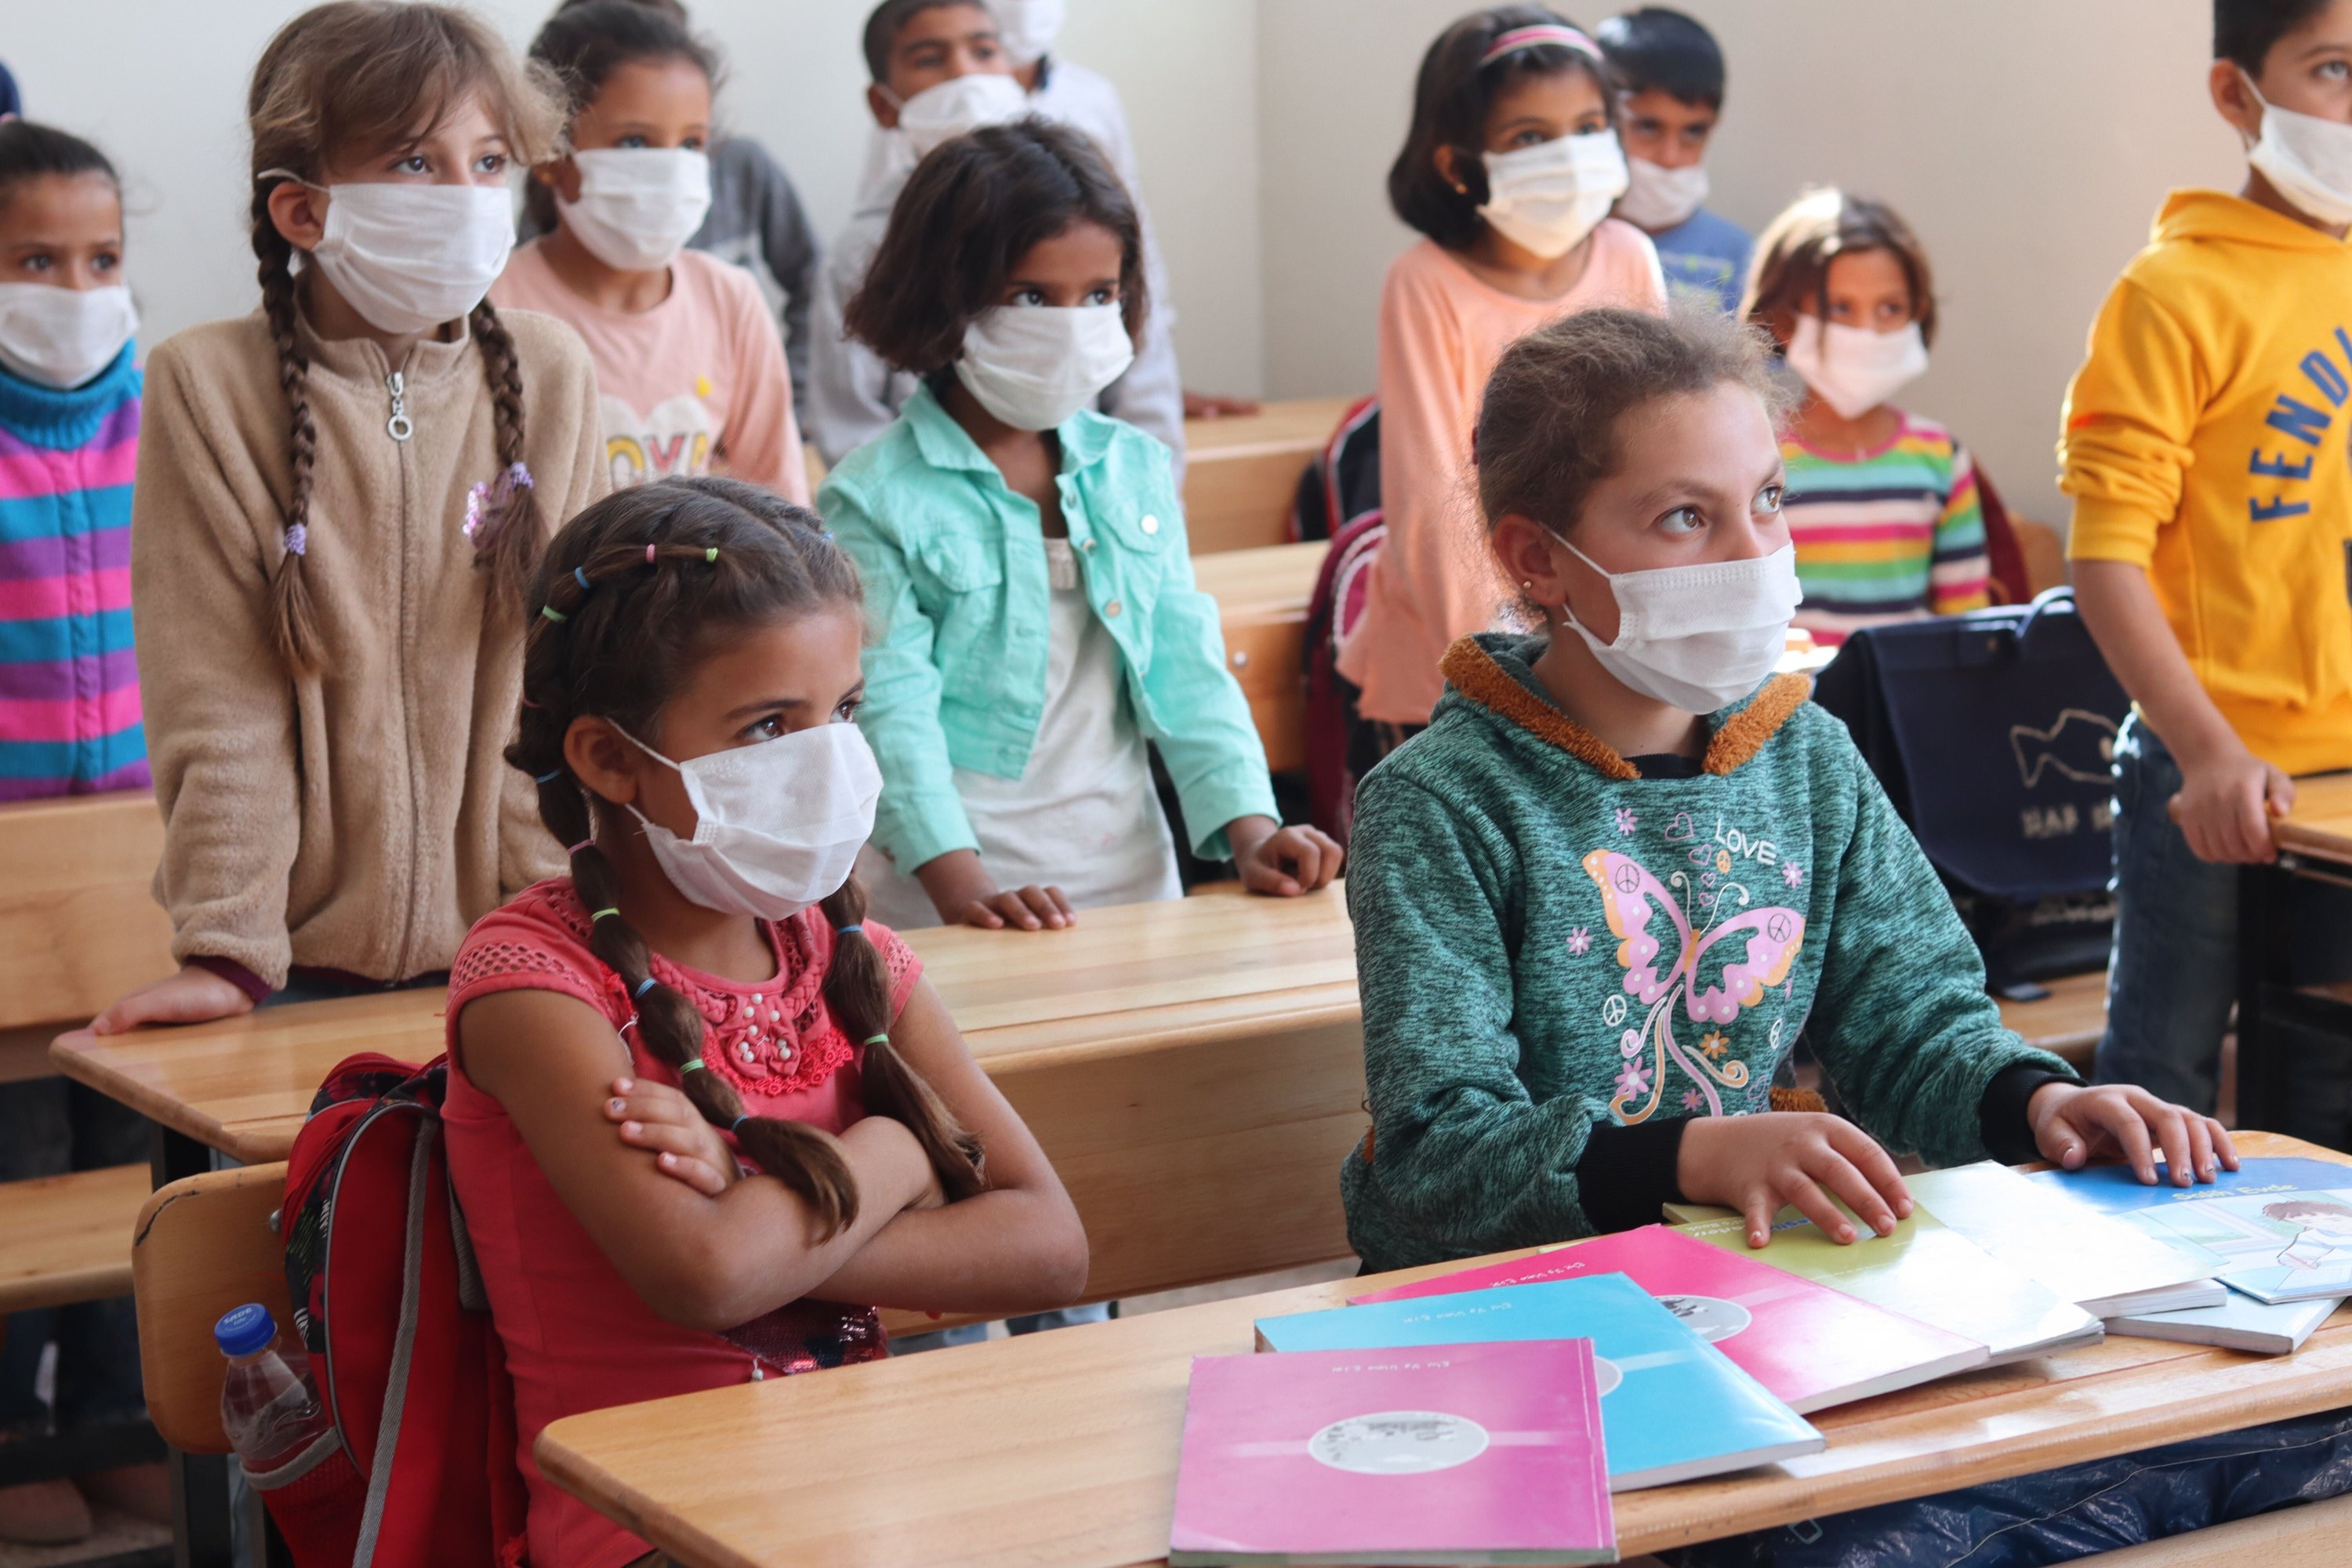 Children, who have recently begun to receive their education under COVID-19 measures, are seen in one of the classrooms of Tal Abyad's Ahmet Yasin Primary School, Oct. 11, 2020. (Dilara Aslan)